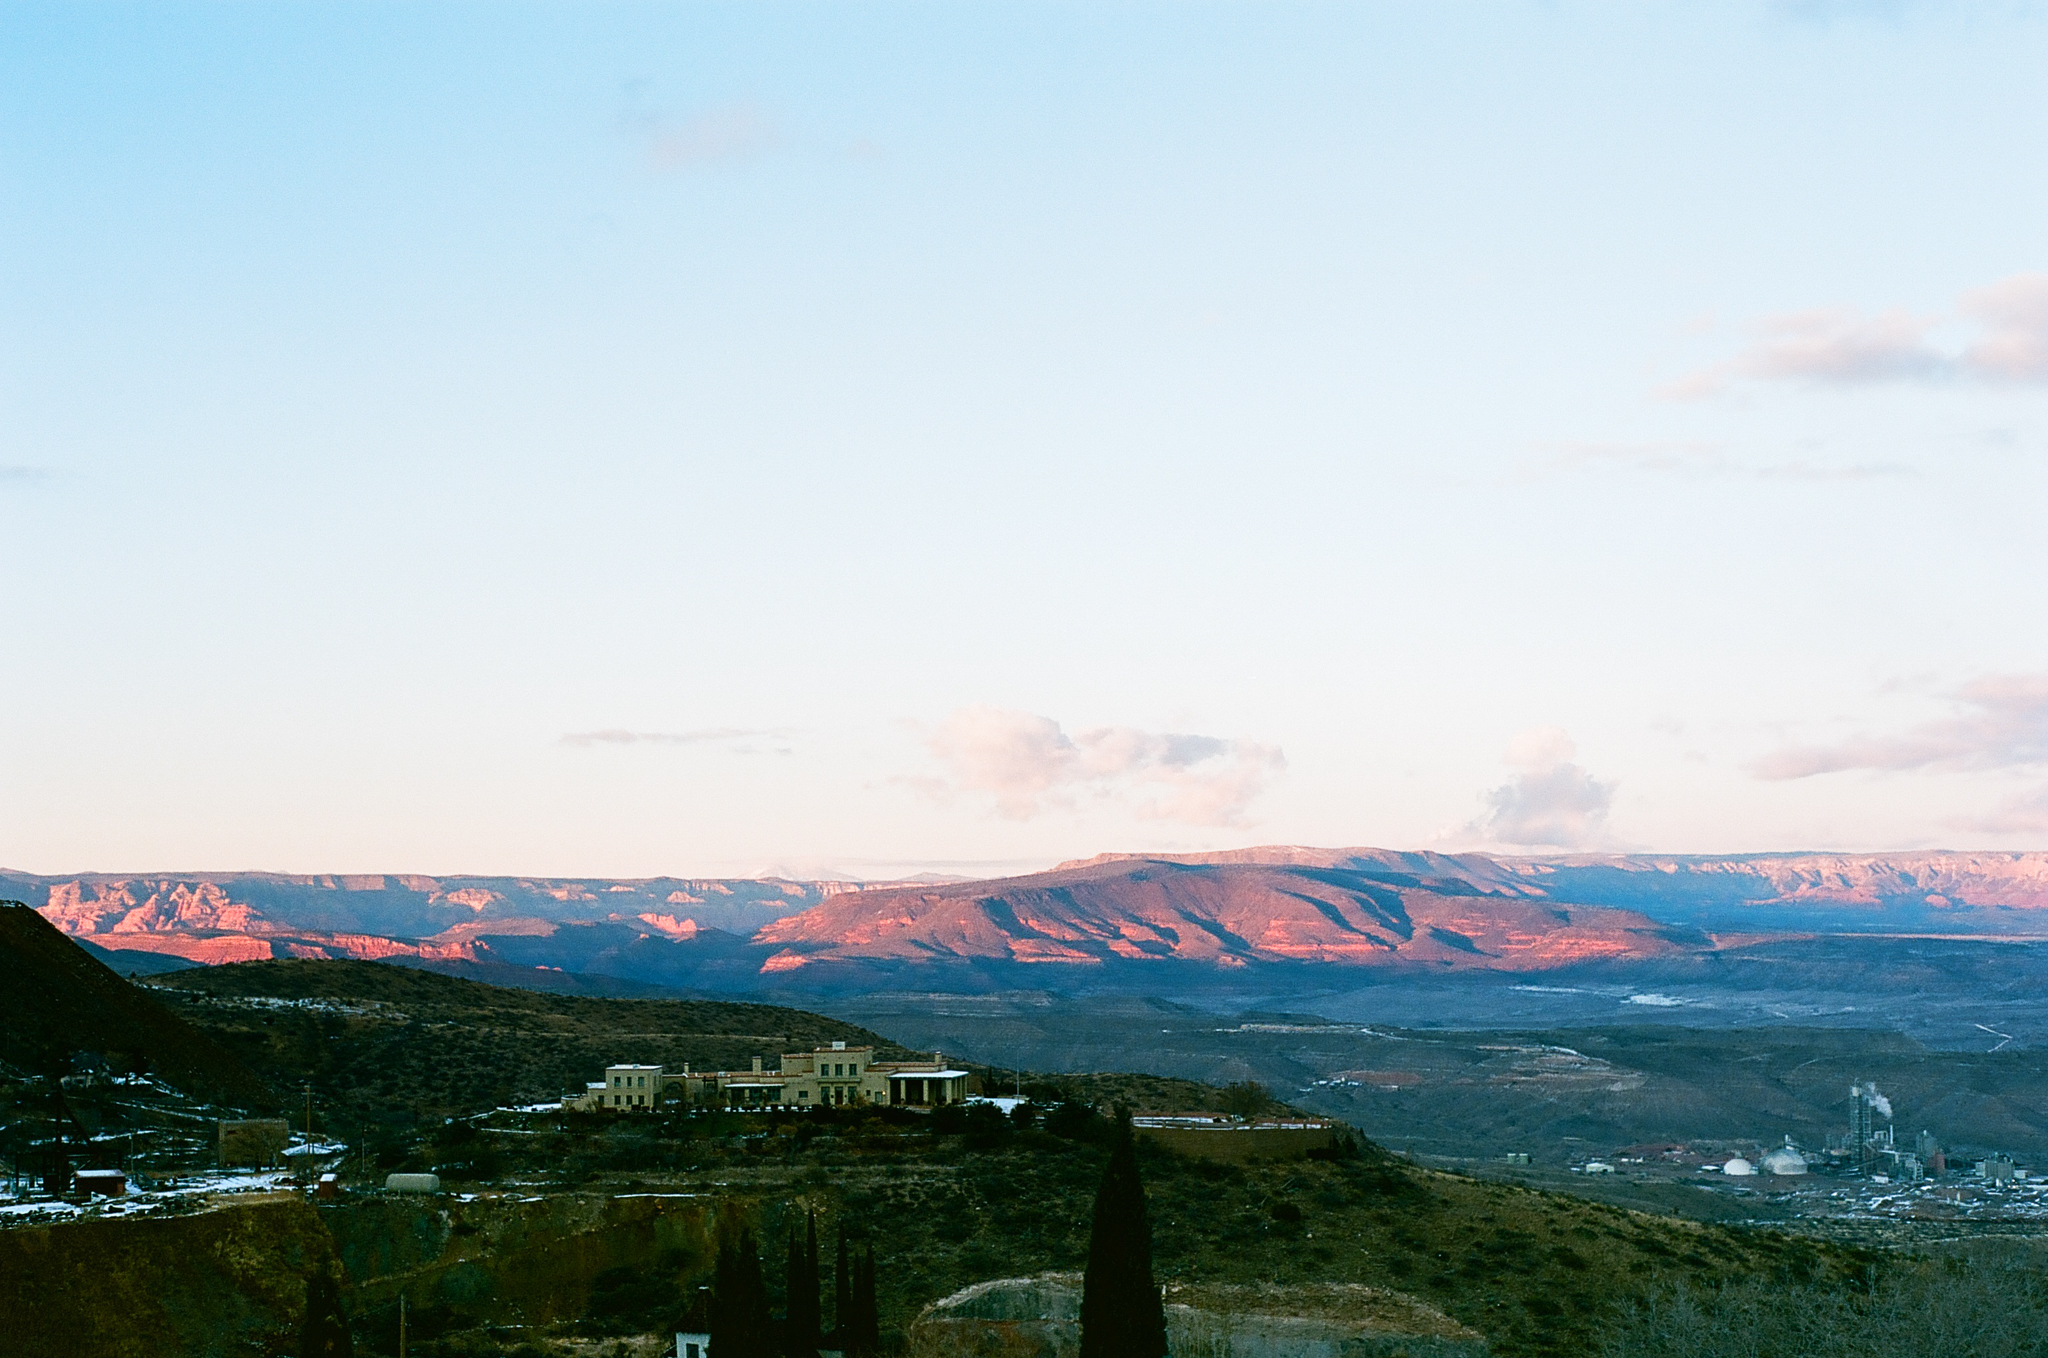 Jerome, Arizona, January 2019. I can't remember if I shot this on my Pentax K1000 or Olympus XA.